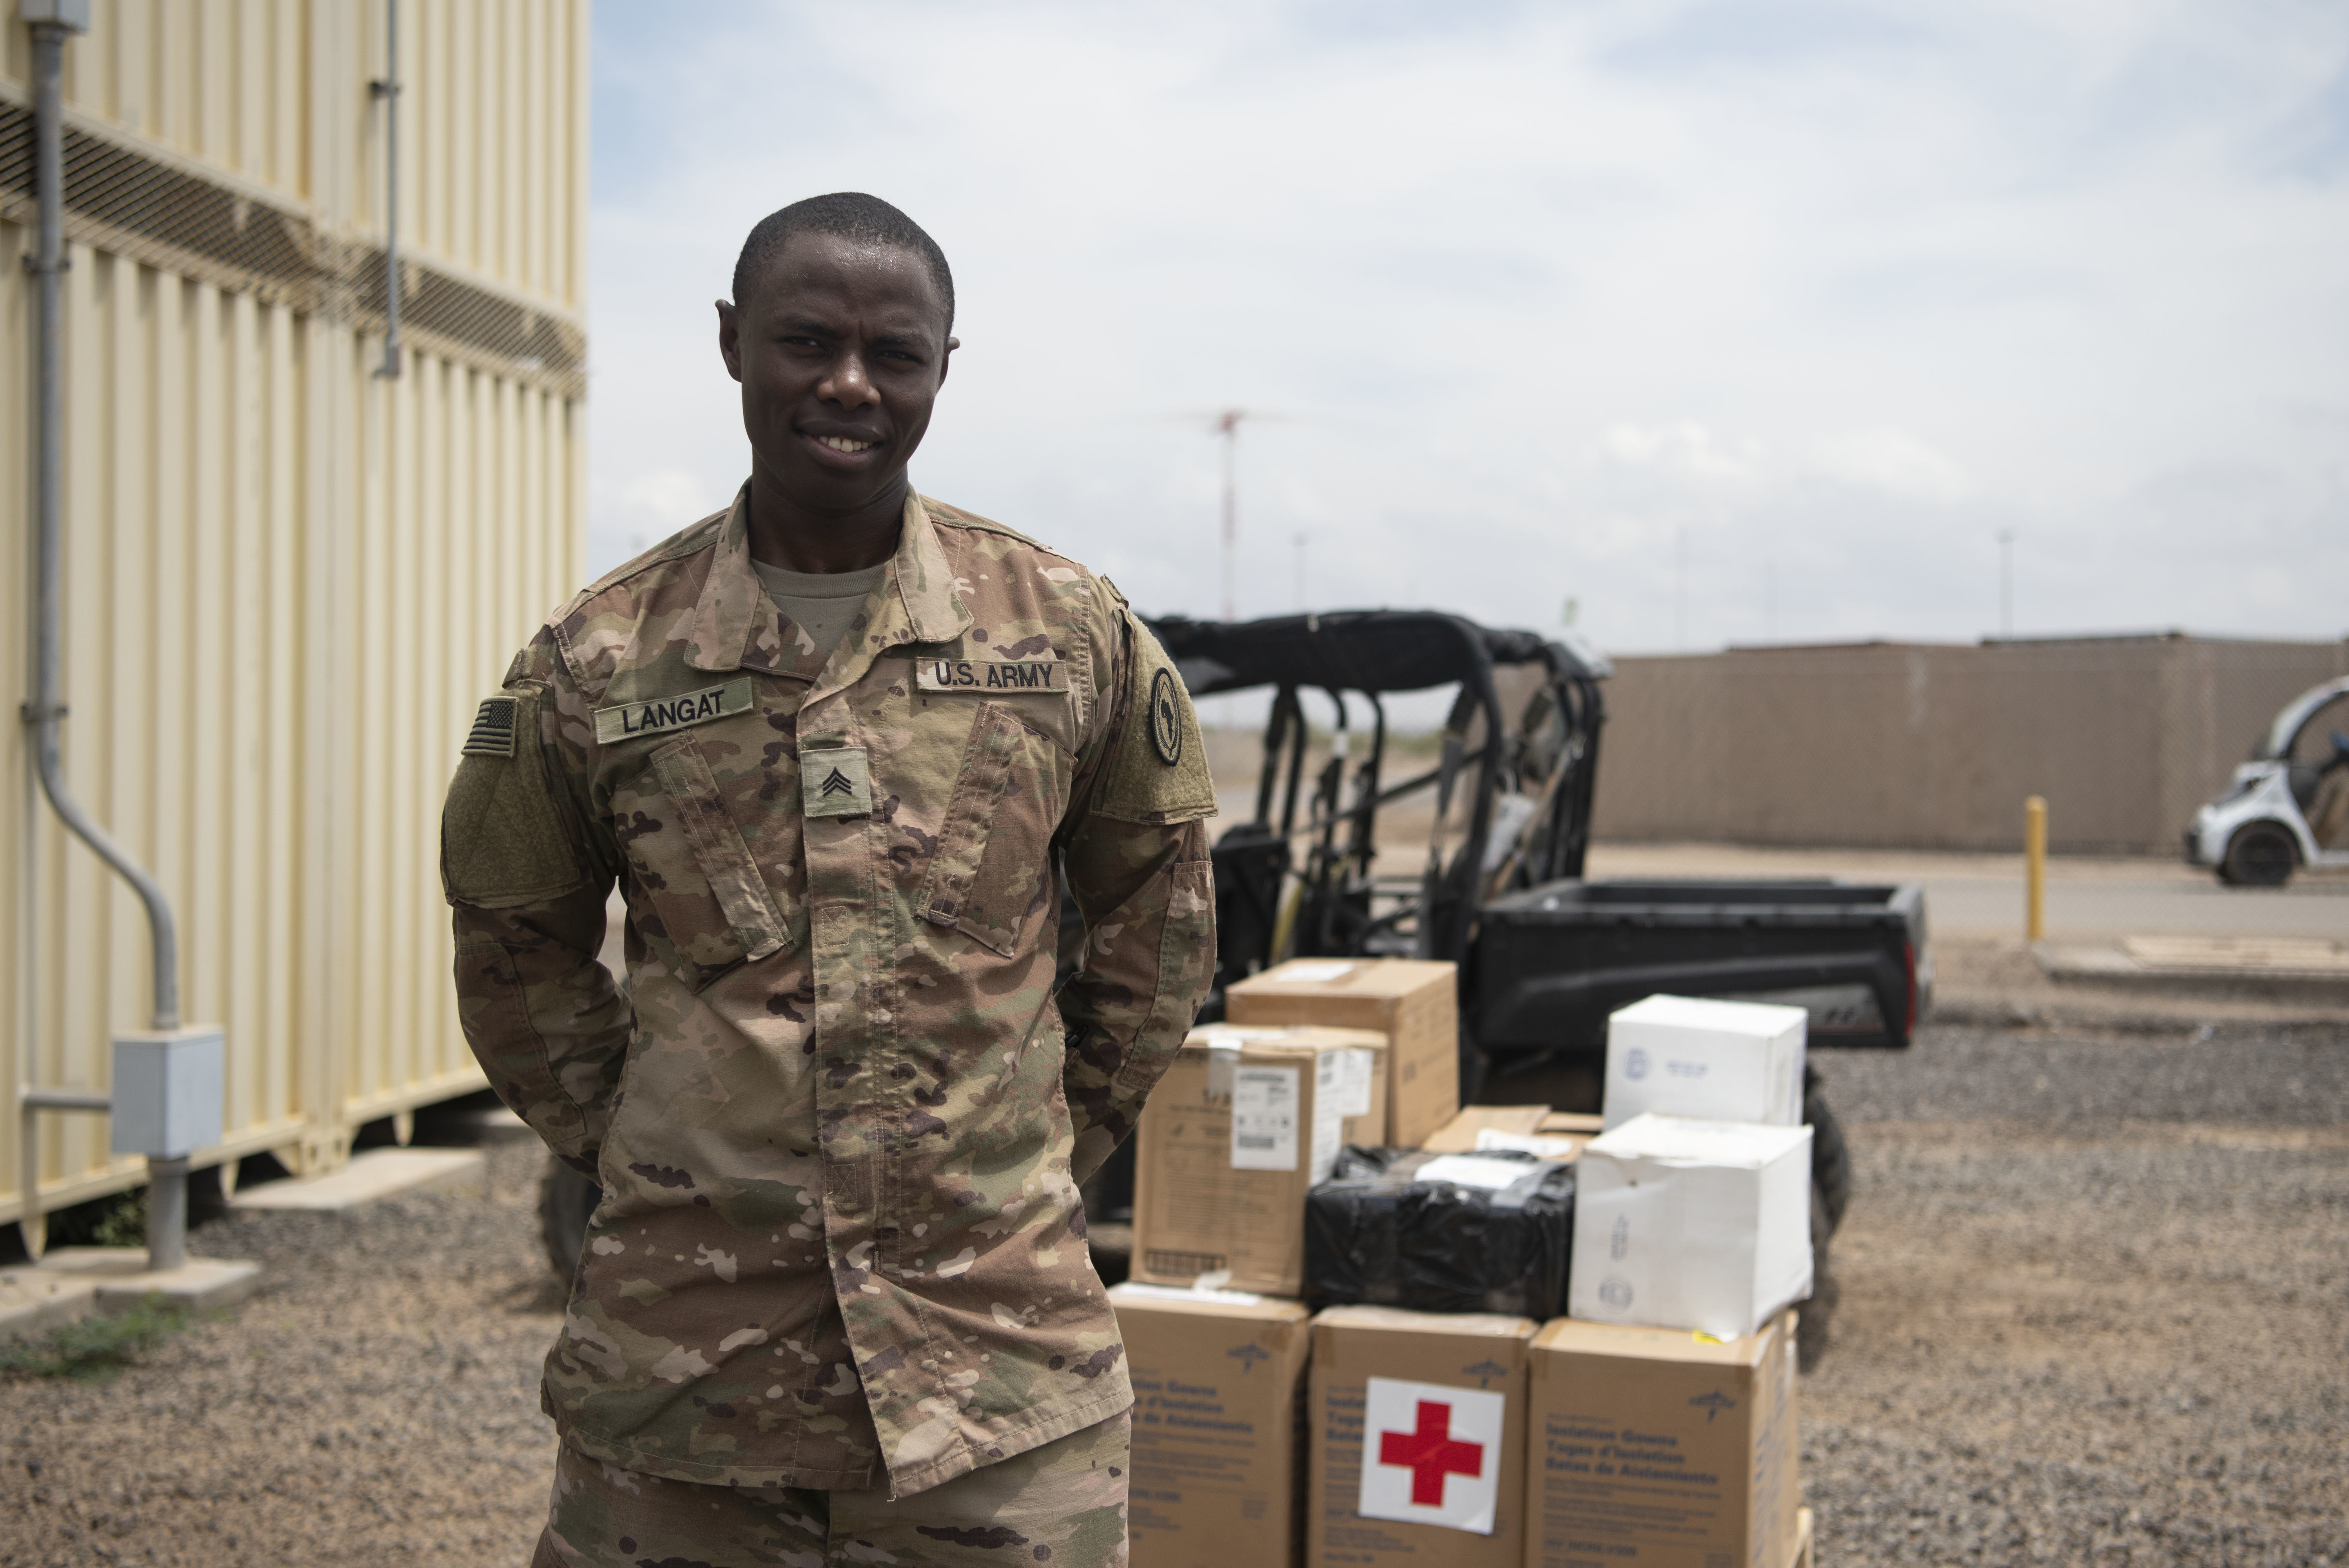 A pallet of medical equipment awaits distribution from the Defense Logistics Agency (DLA) at Camp Lemonnier, Djibouti, Apr. 22, 2020. The medical equipment is part of Combined Joint Task Force-Horn of Africa's (CJTF-HOA) protective measures for COVID-19 to maintain the health of the force. (U.S. Air Force photo by Tech. Sgt. Ashley Nicole Taylor)